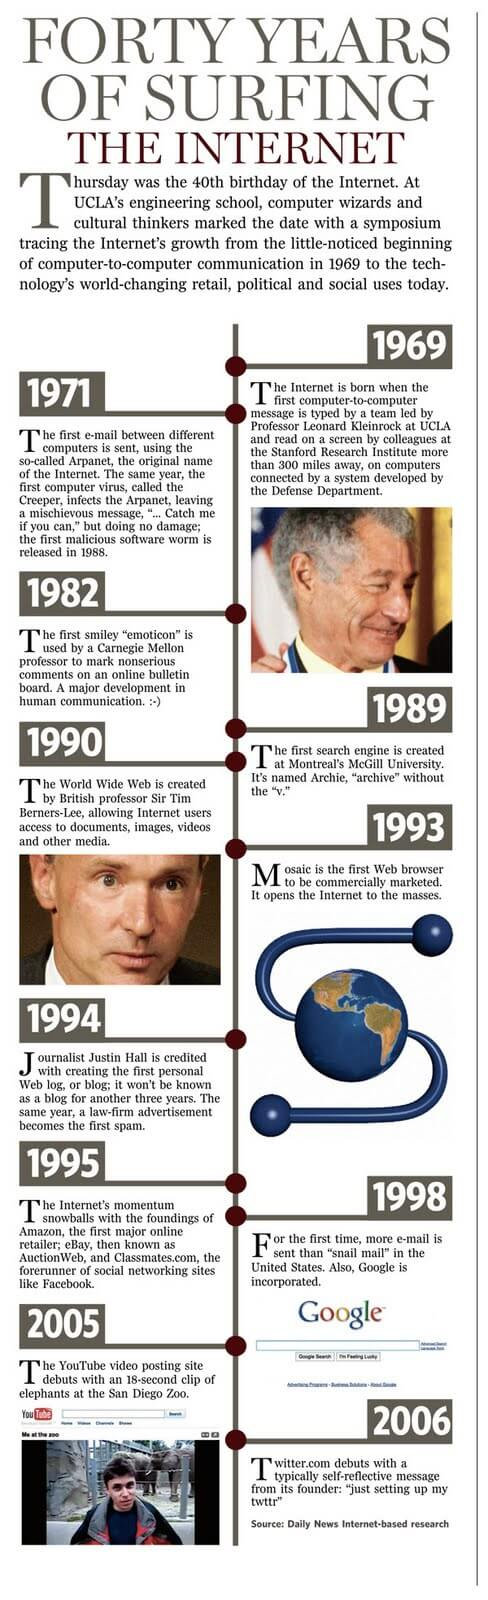 Timeline of the Internet.